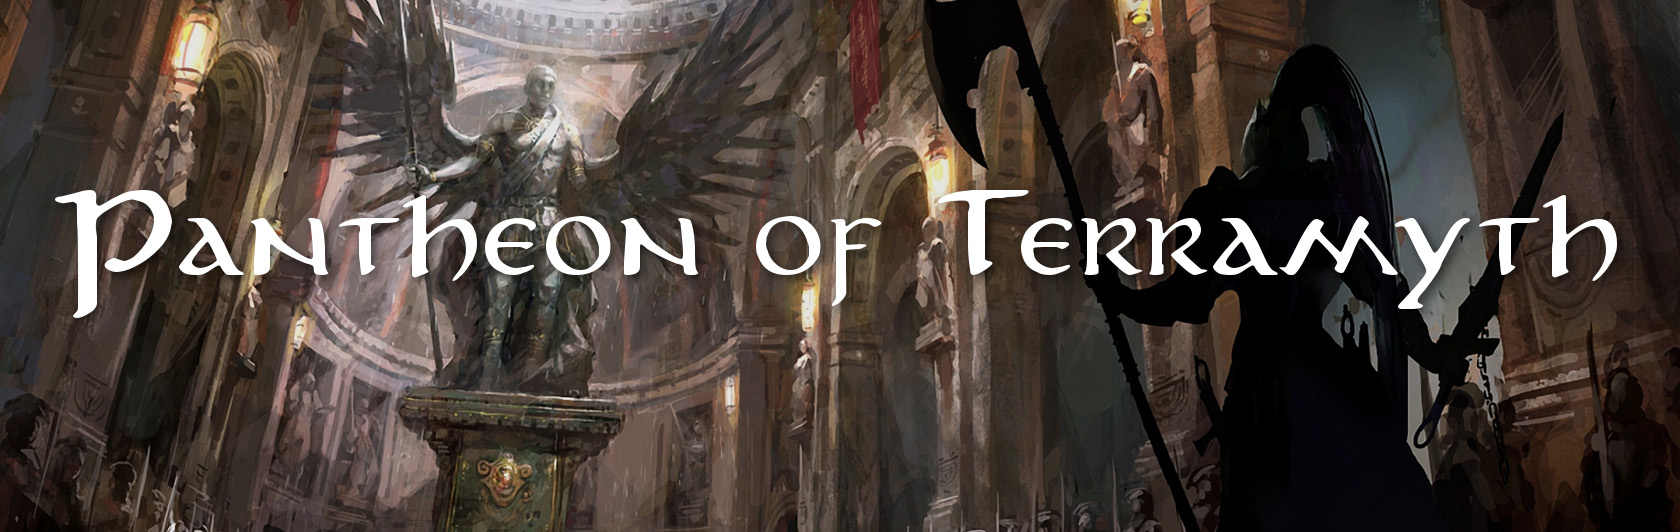 LoT_Wiki_Banner_Pantheon.jpg